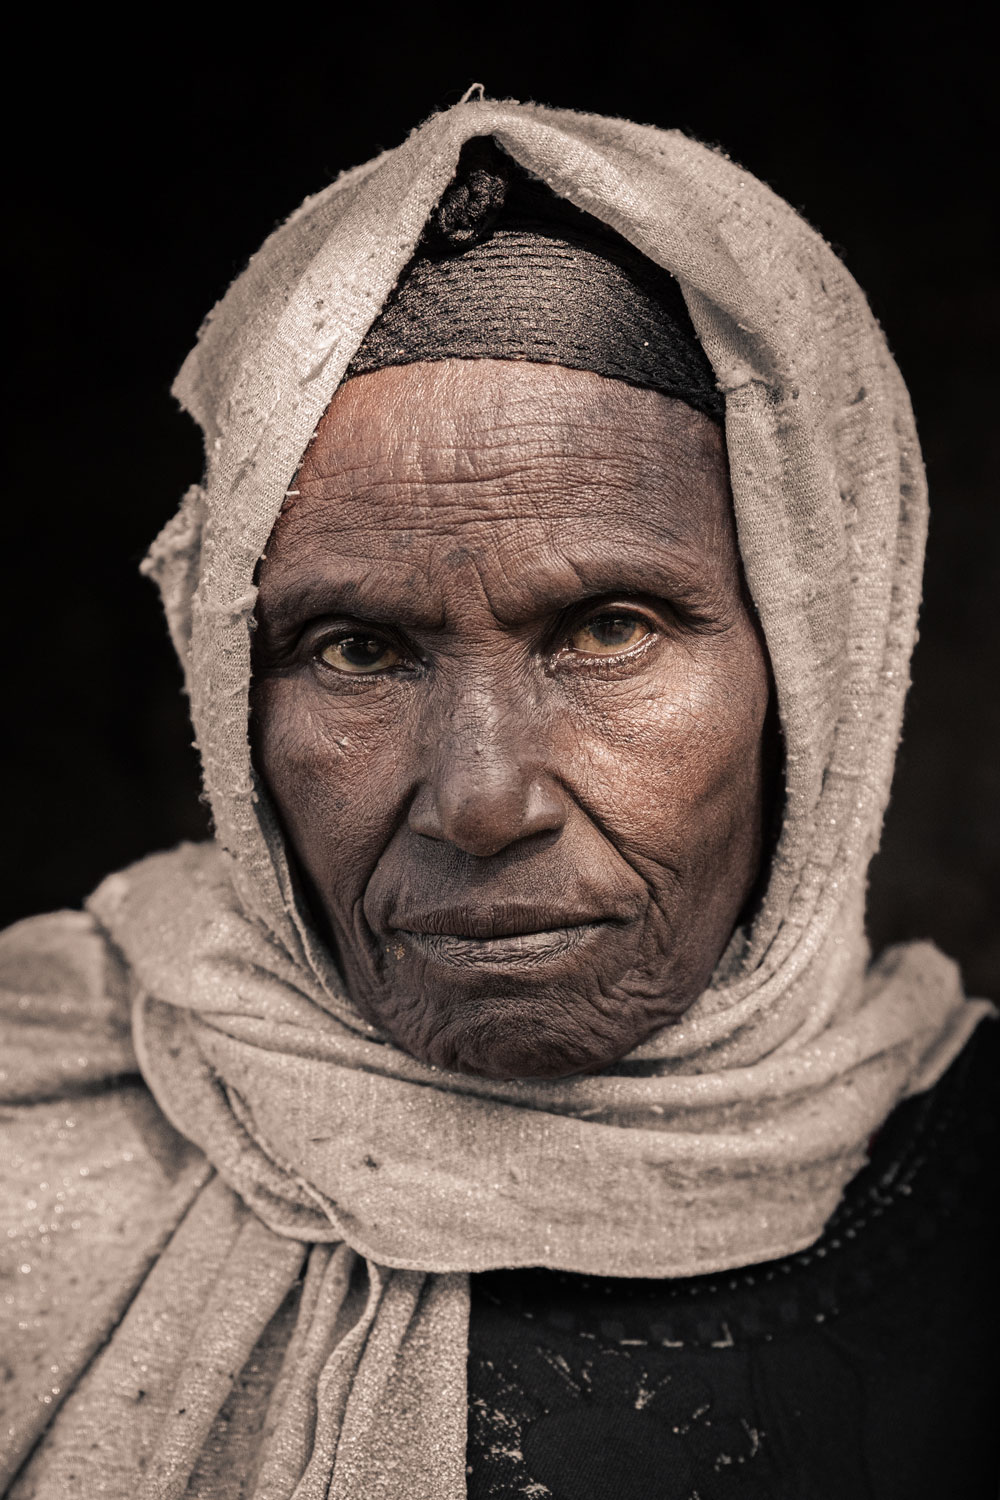 An ethiopian woman with a head scarf